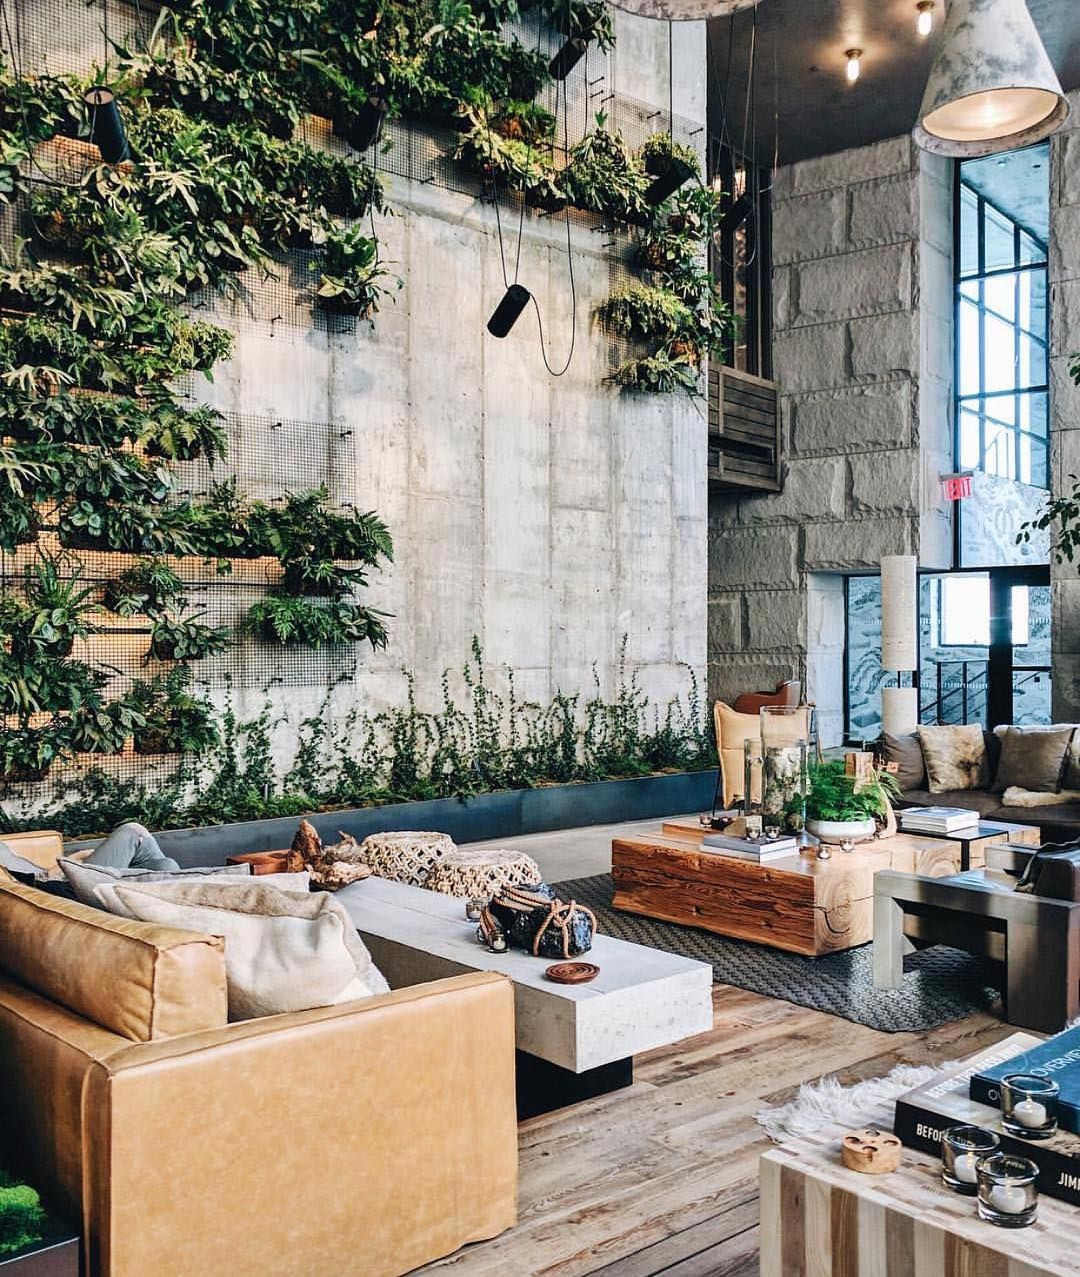 Aidan Anderson Thelocalproject On Instagram Polished Concrete Greenery Feature Wall Leather Couches Hotel Lobby Design Lobby Design Architecture Design